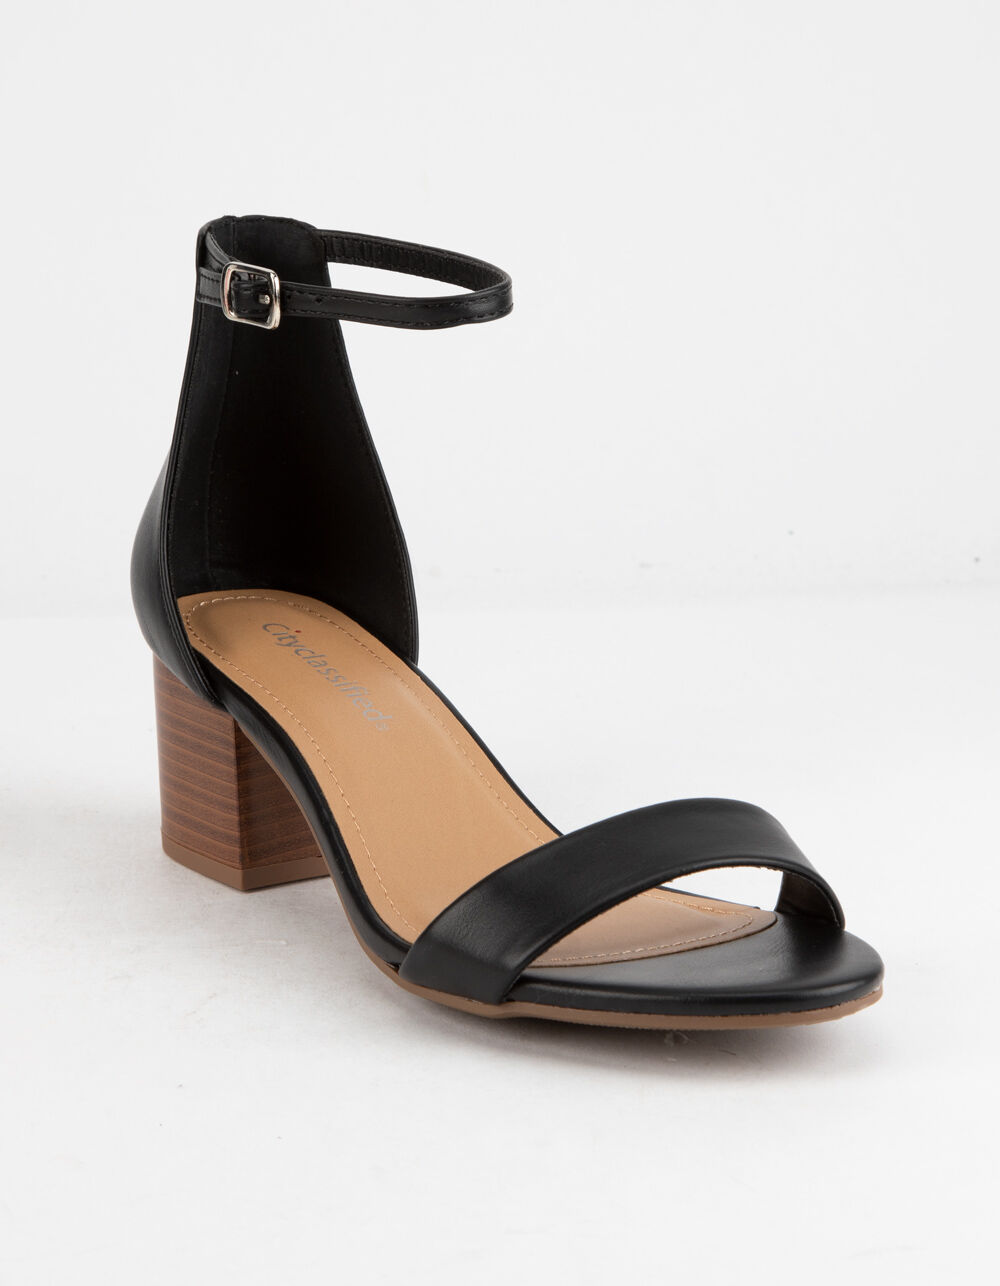 Image of CITY CLASSIFIED ANKLE STRAP STACKED BLACK HEELED SANDALS